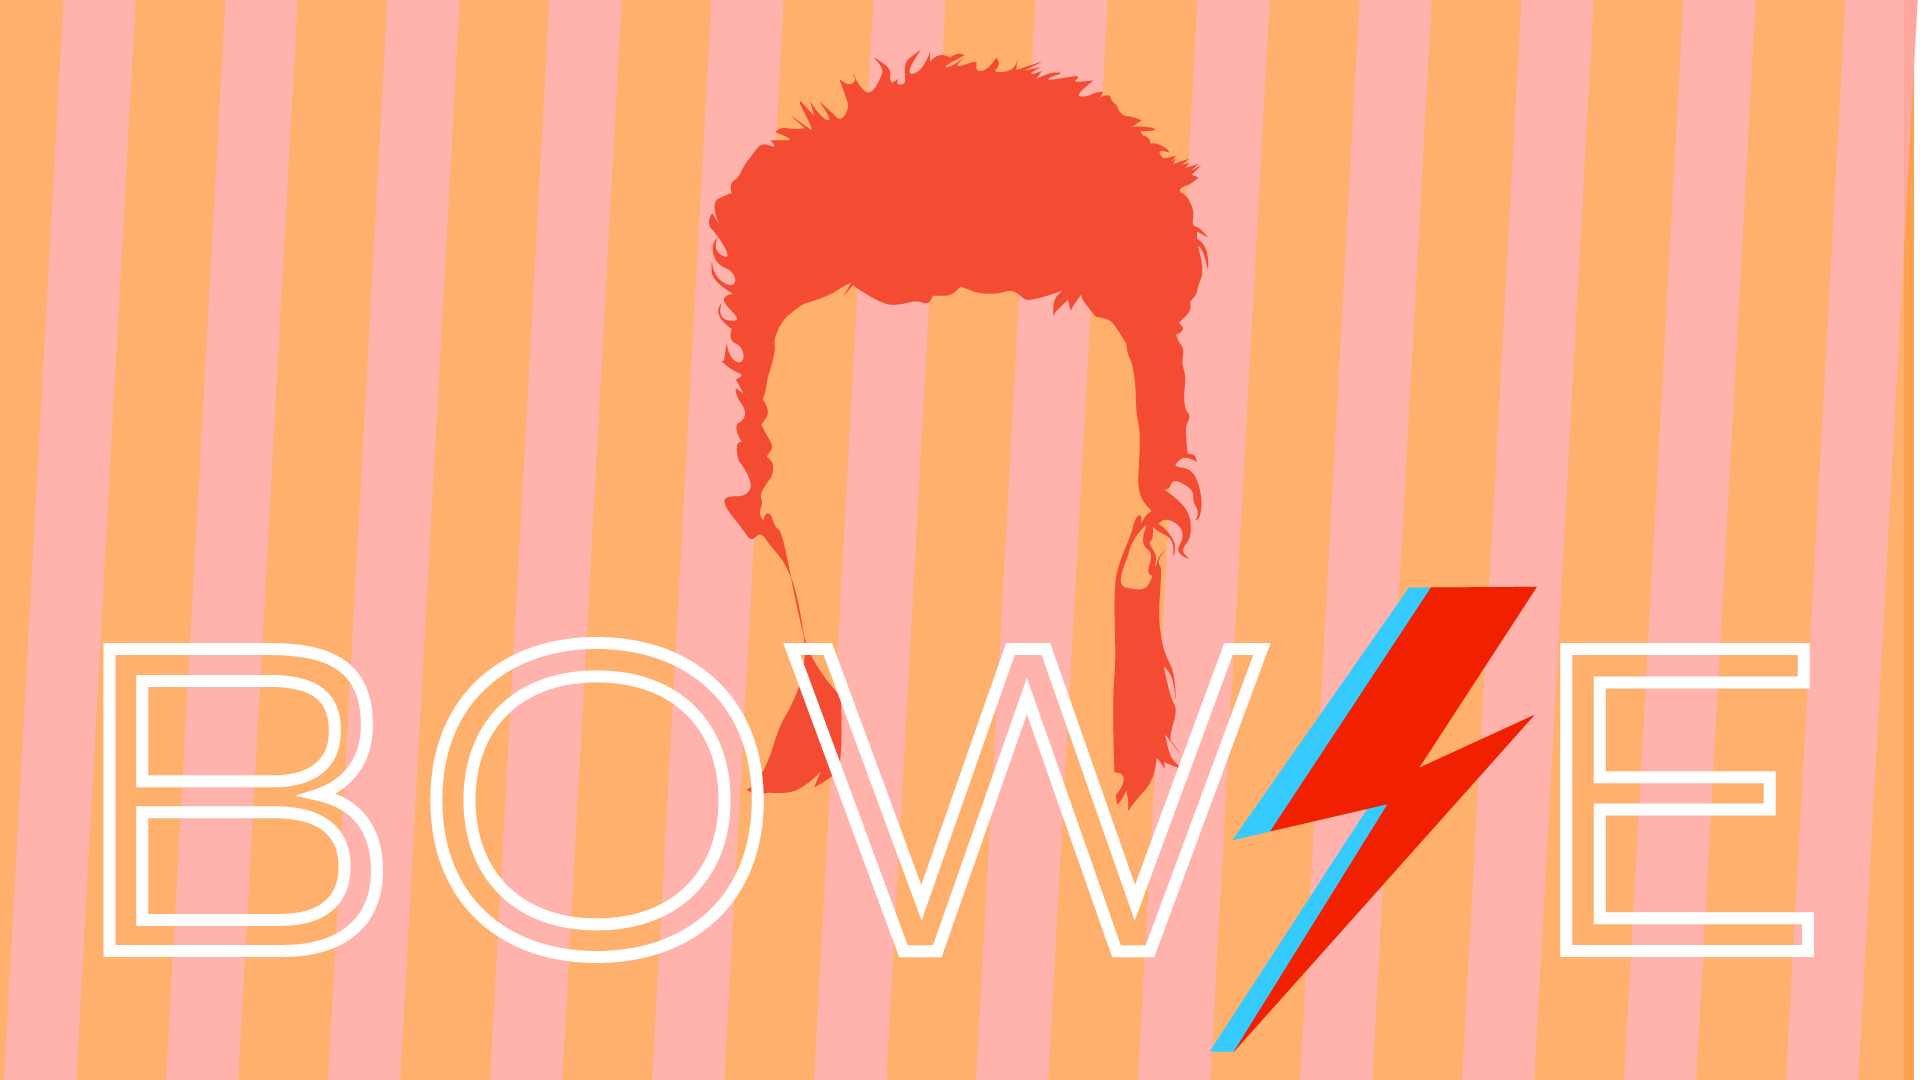 Baby names B Bowie